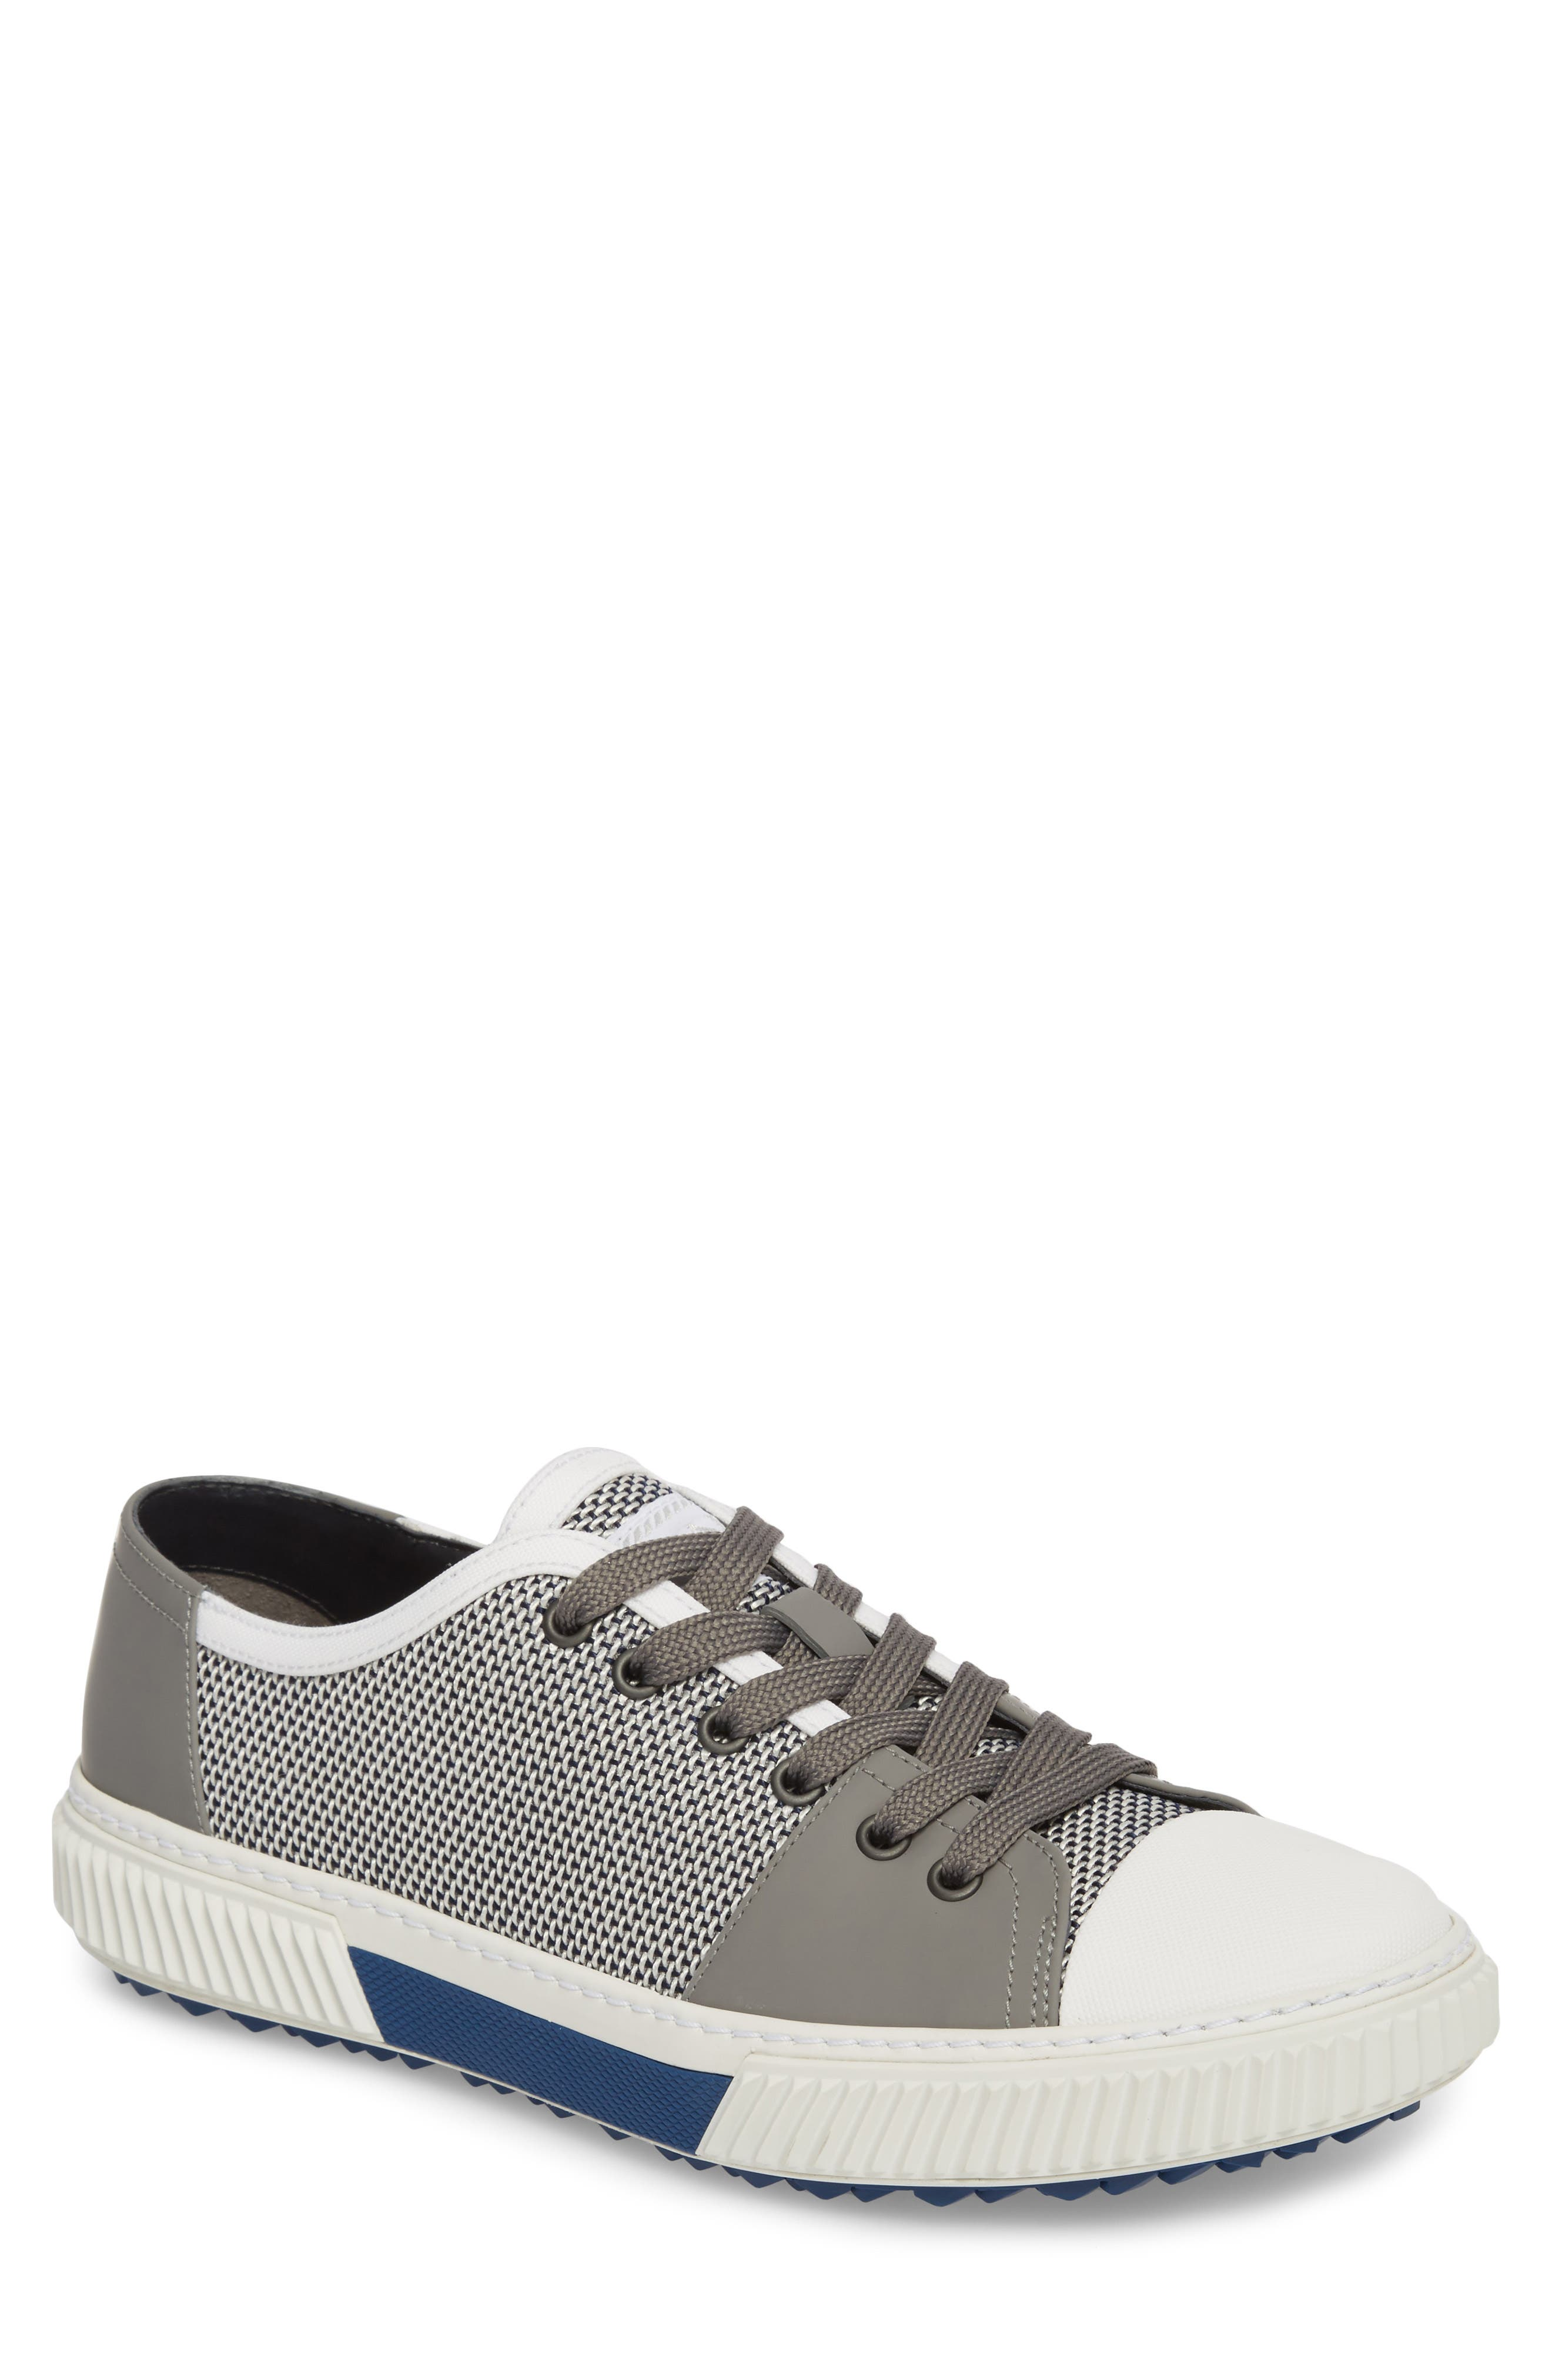 Linea Rossa Low-Top Sneaker,                         Main,                         color, Baltic White